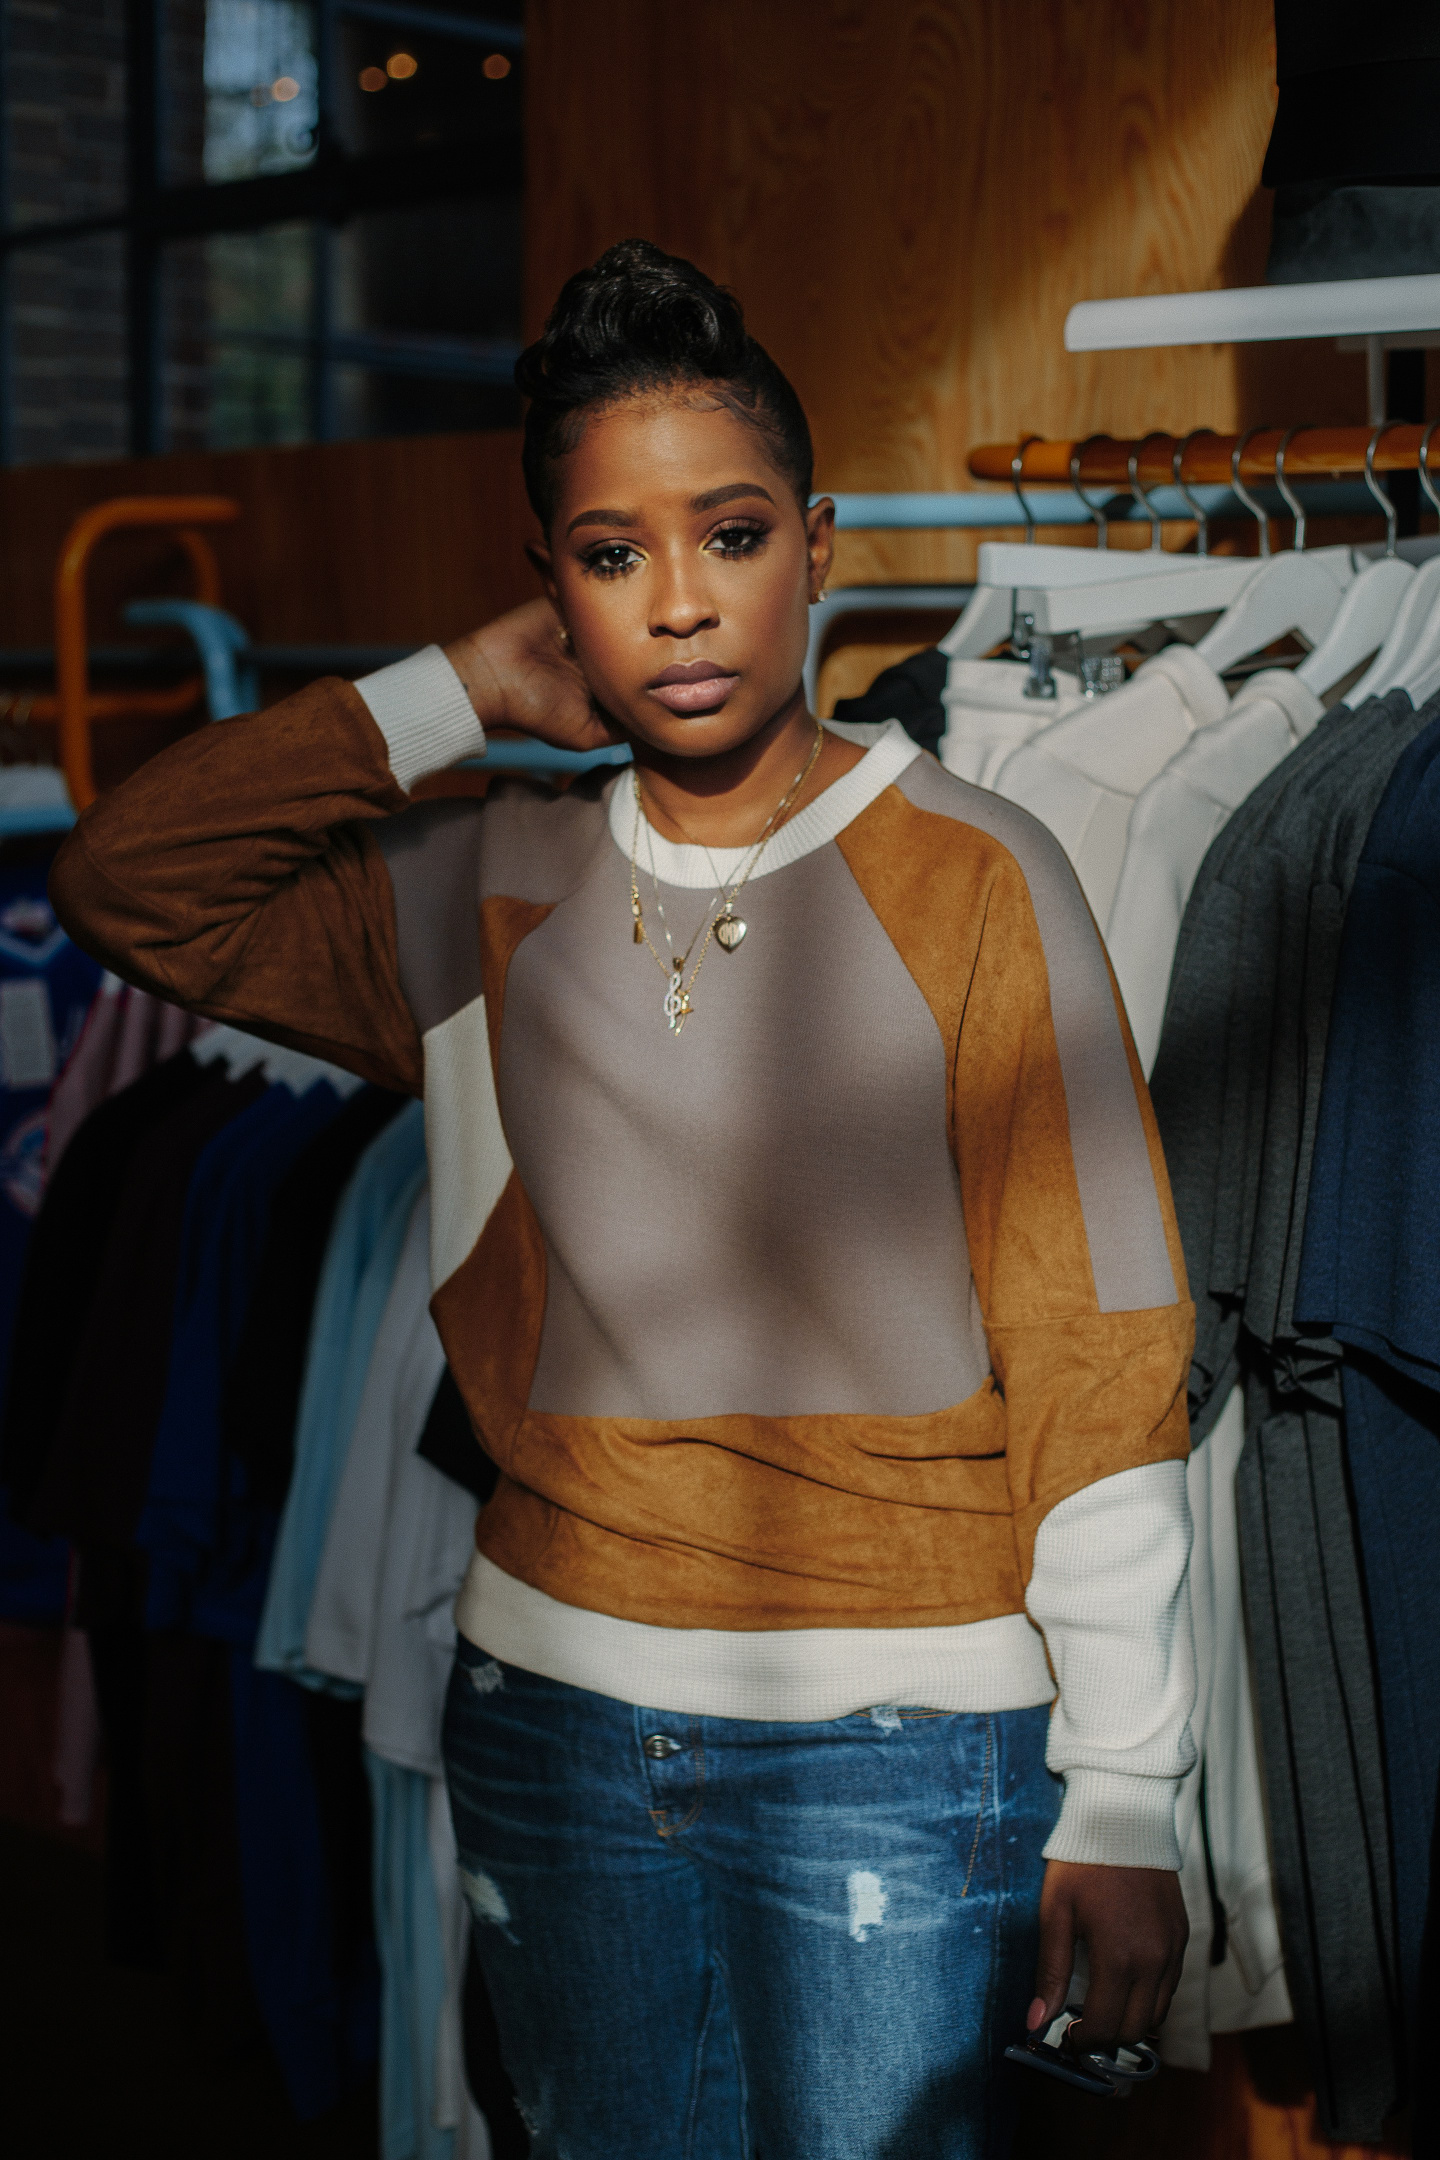 Dej Loaf Moves In Silence Now She Wants To Share Her Voice With The